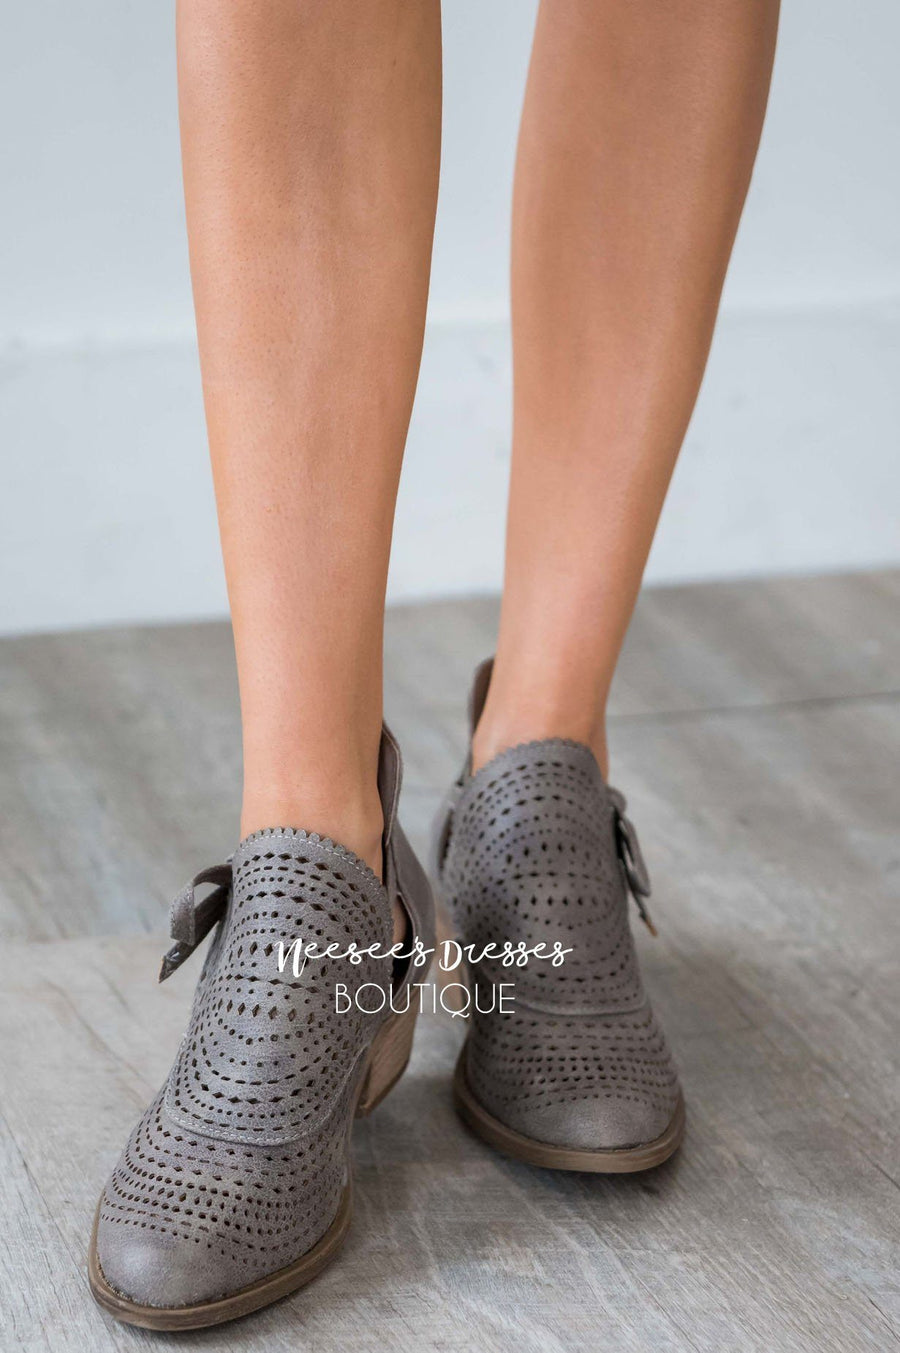 The Cici Bow Detail Booties